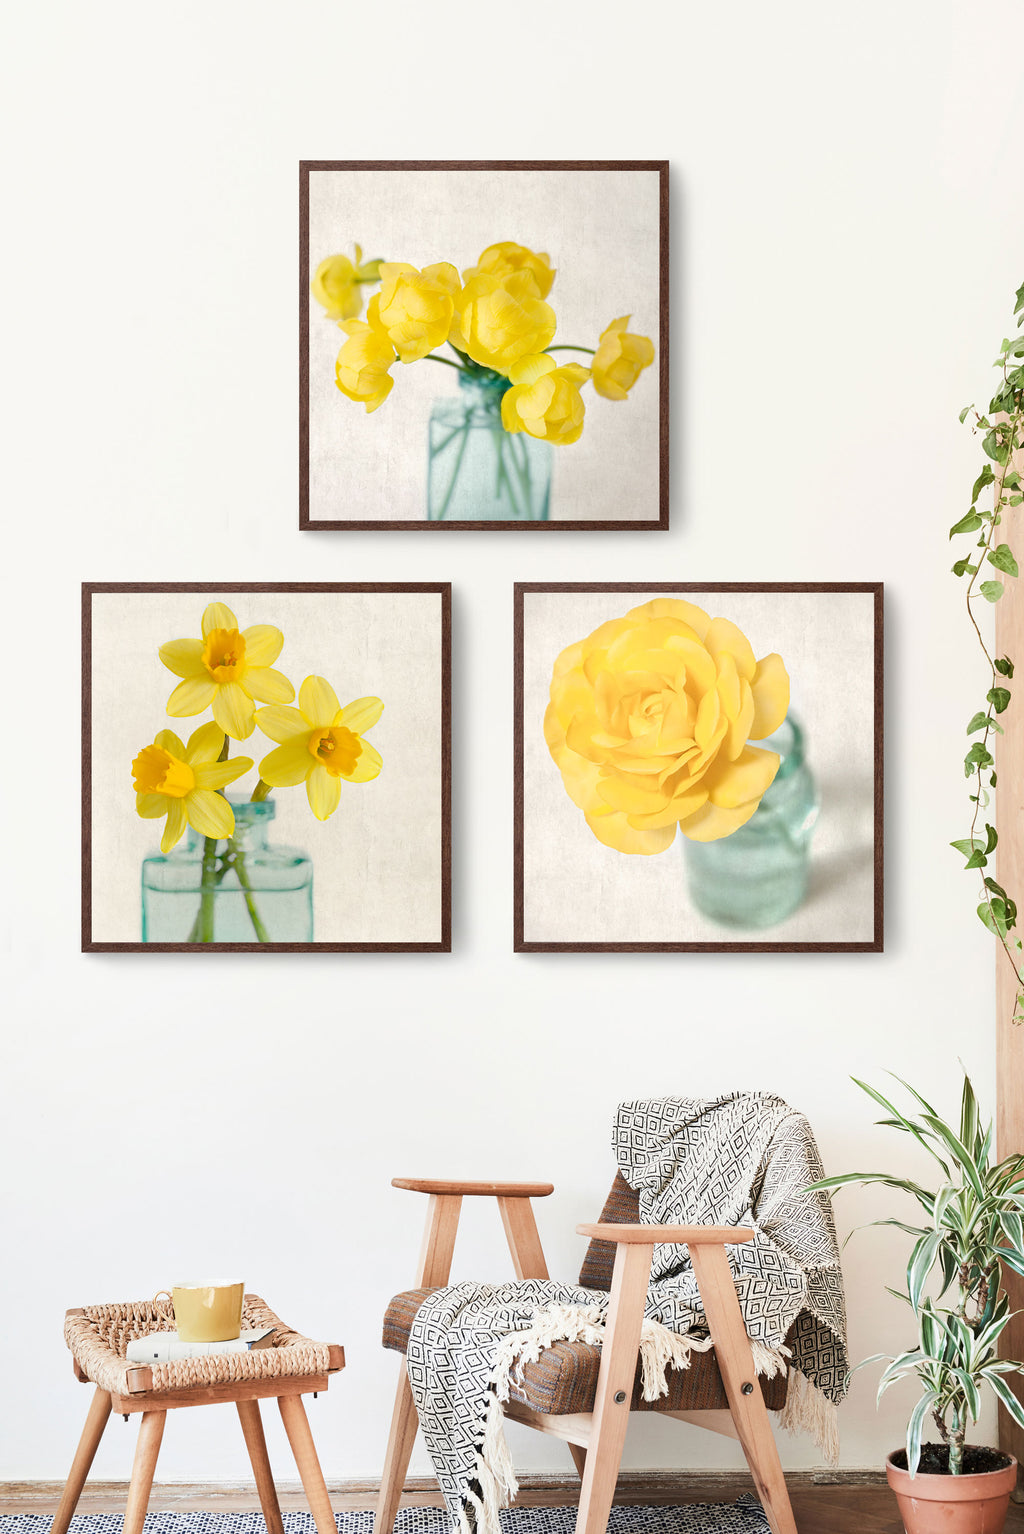 set of 3 yellow floral still life prints